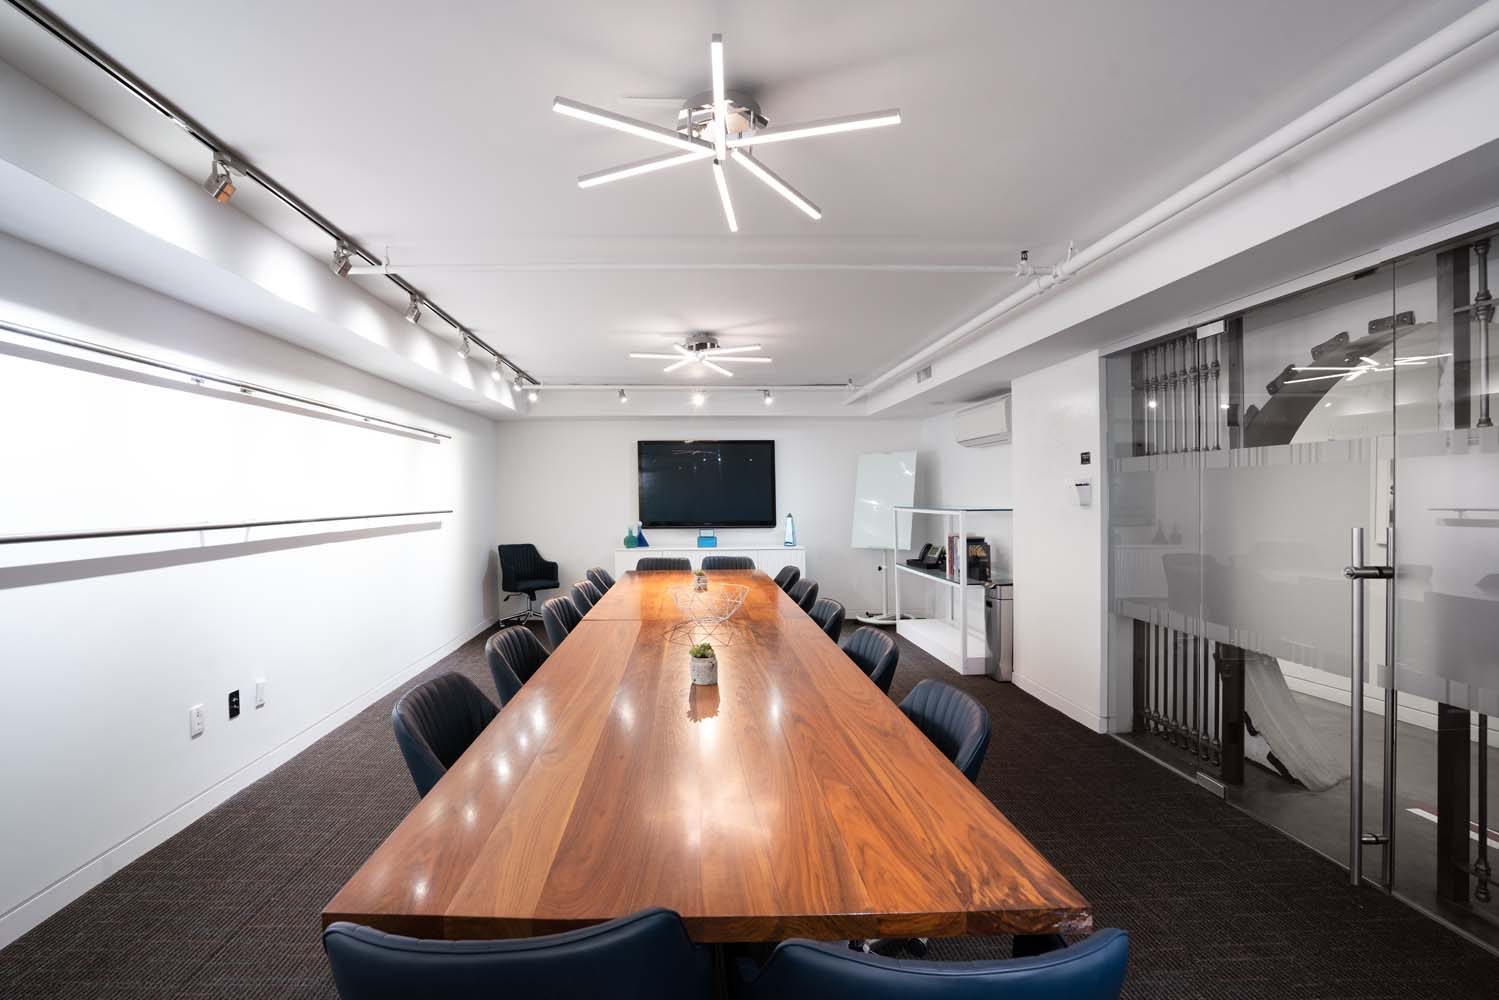 conference rooms - Fully equipped private meeting rooms for your next client or boardroom meeting, team offsite, press preview, interviews, training, presentation, workshop, brainstorm, launch event, market week & more. Seating options for 2-25.Rent by the hour, day, or week. Instant online booking with no commitment.